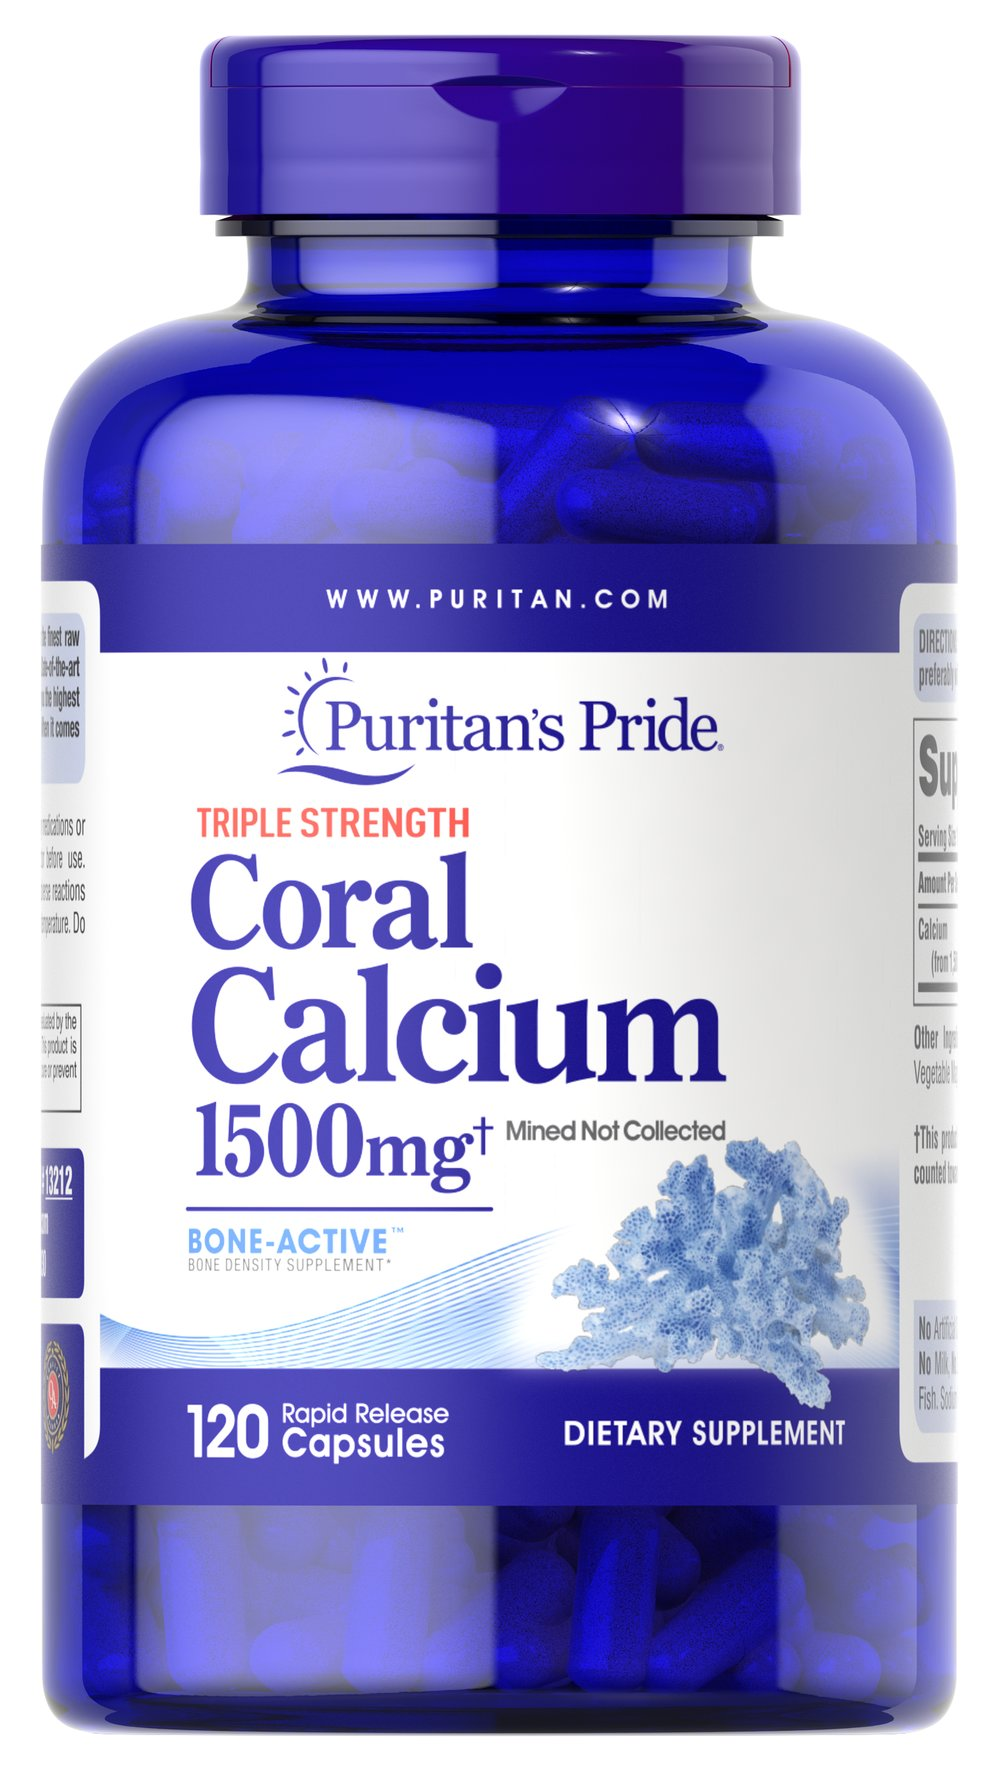 Triple Strength Coral Calcium 1500 mg <p>Our Triple Strength Coral Calcium delivers three times the amount of Calcium (562 mg per capsule — 1500 mg daily when taken as directed). Calcium promotes bone strength and supports heart, nerve and muscle functions.** This Coral Calcium is mined, not collected, from an above ground source  making it environmentally friendly.</p> 120 Capsules 1500 mg $41.99